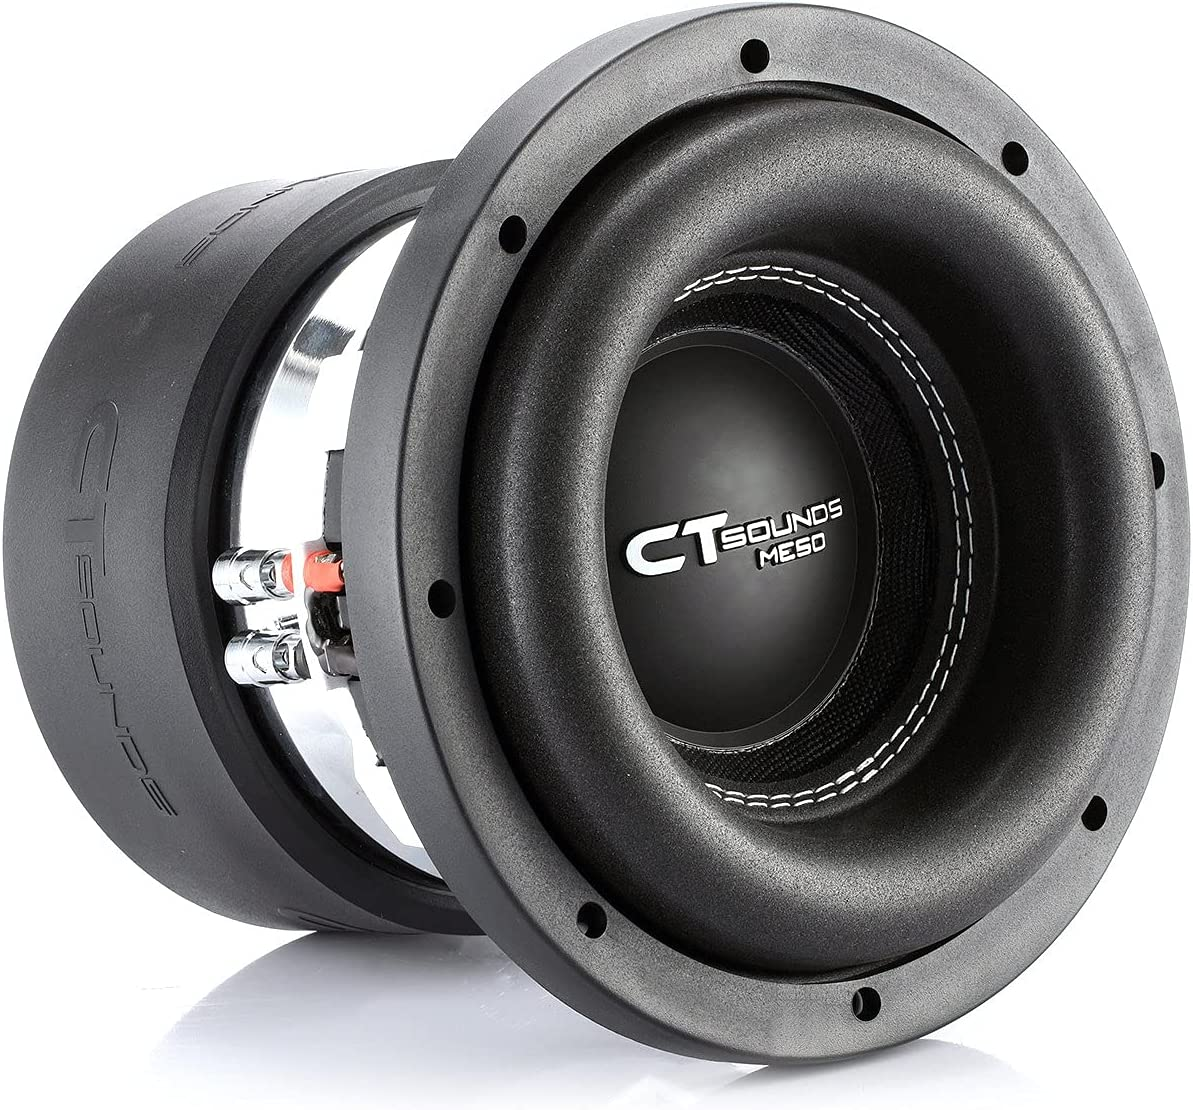 """CT Sounds MESO-8-D4 8"""" Car Subwoofer - Best 8-inch Subwoofers In 2021"""